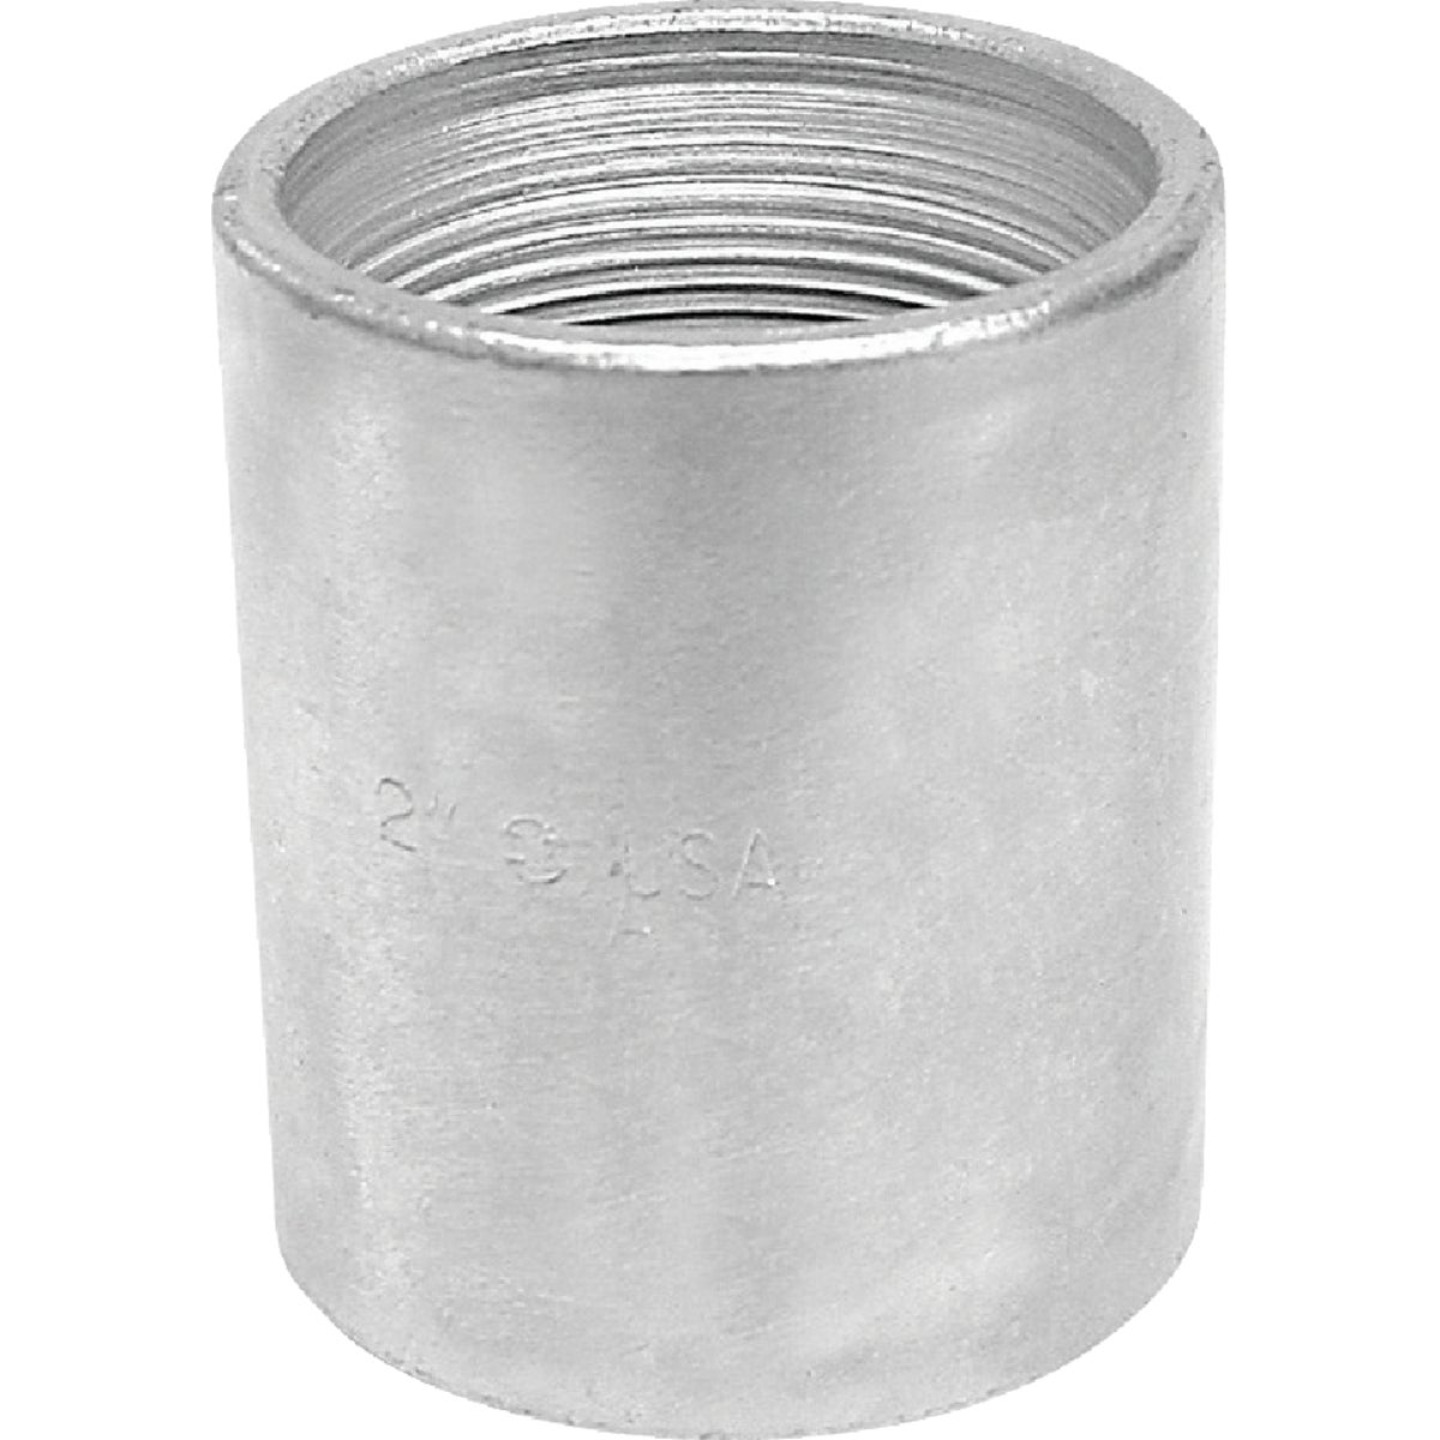 Anvil 1 In. x 1 In. FPT Standard Merchant Galvanized Coupling Image 1